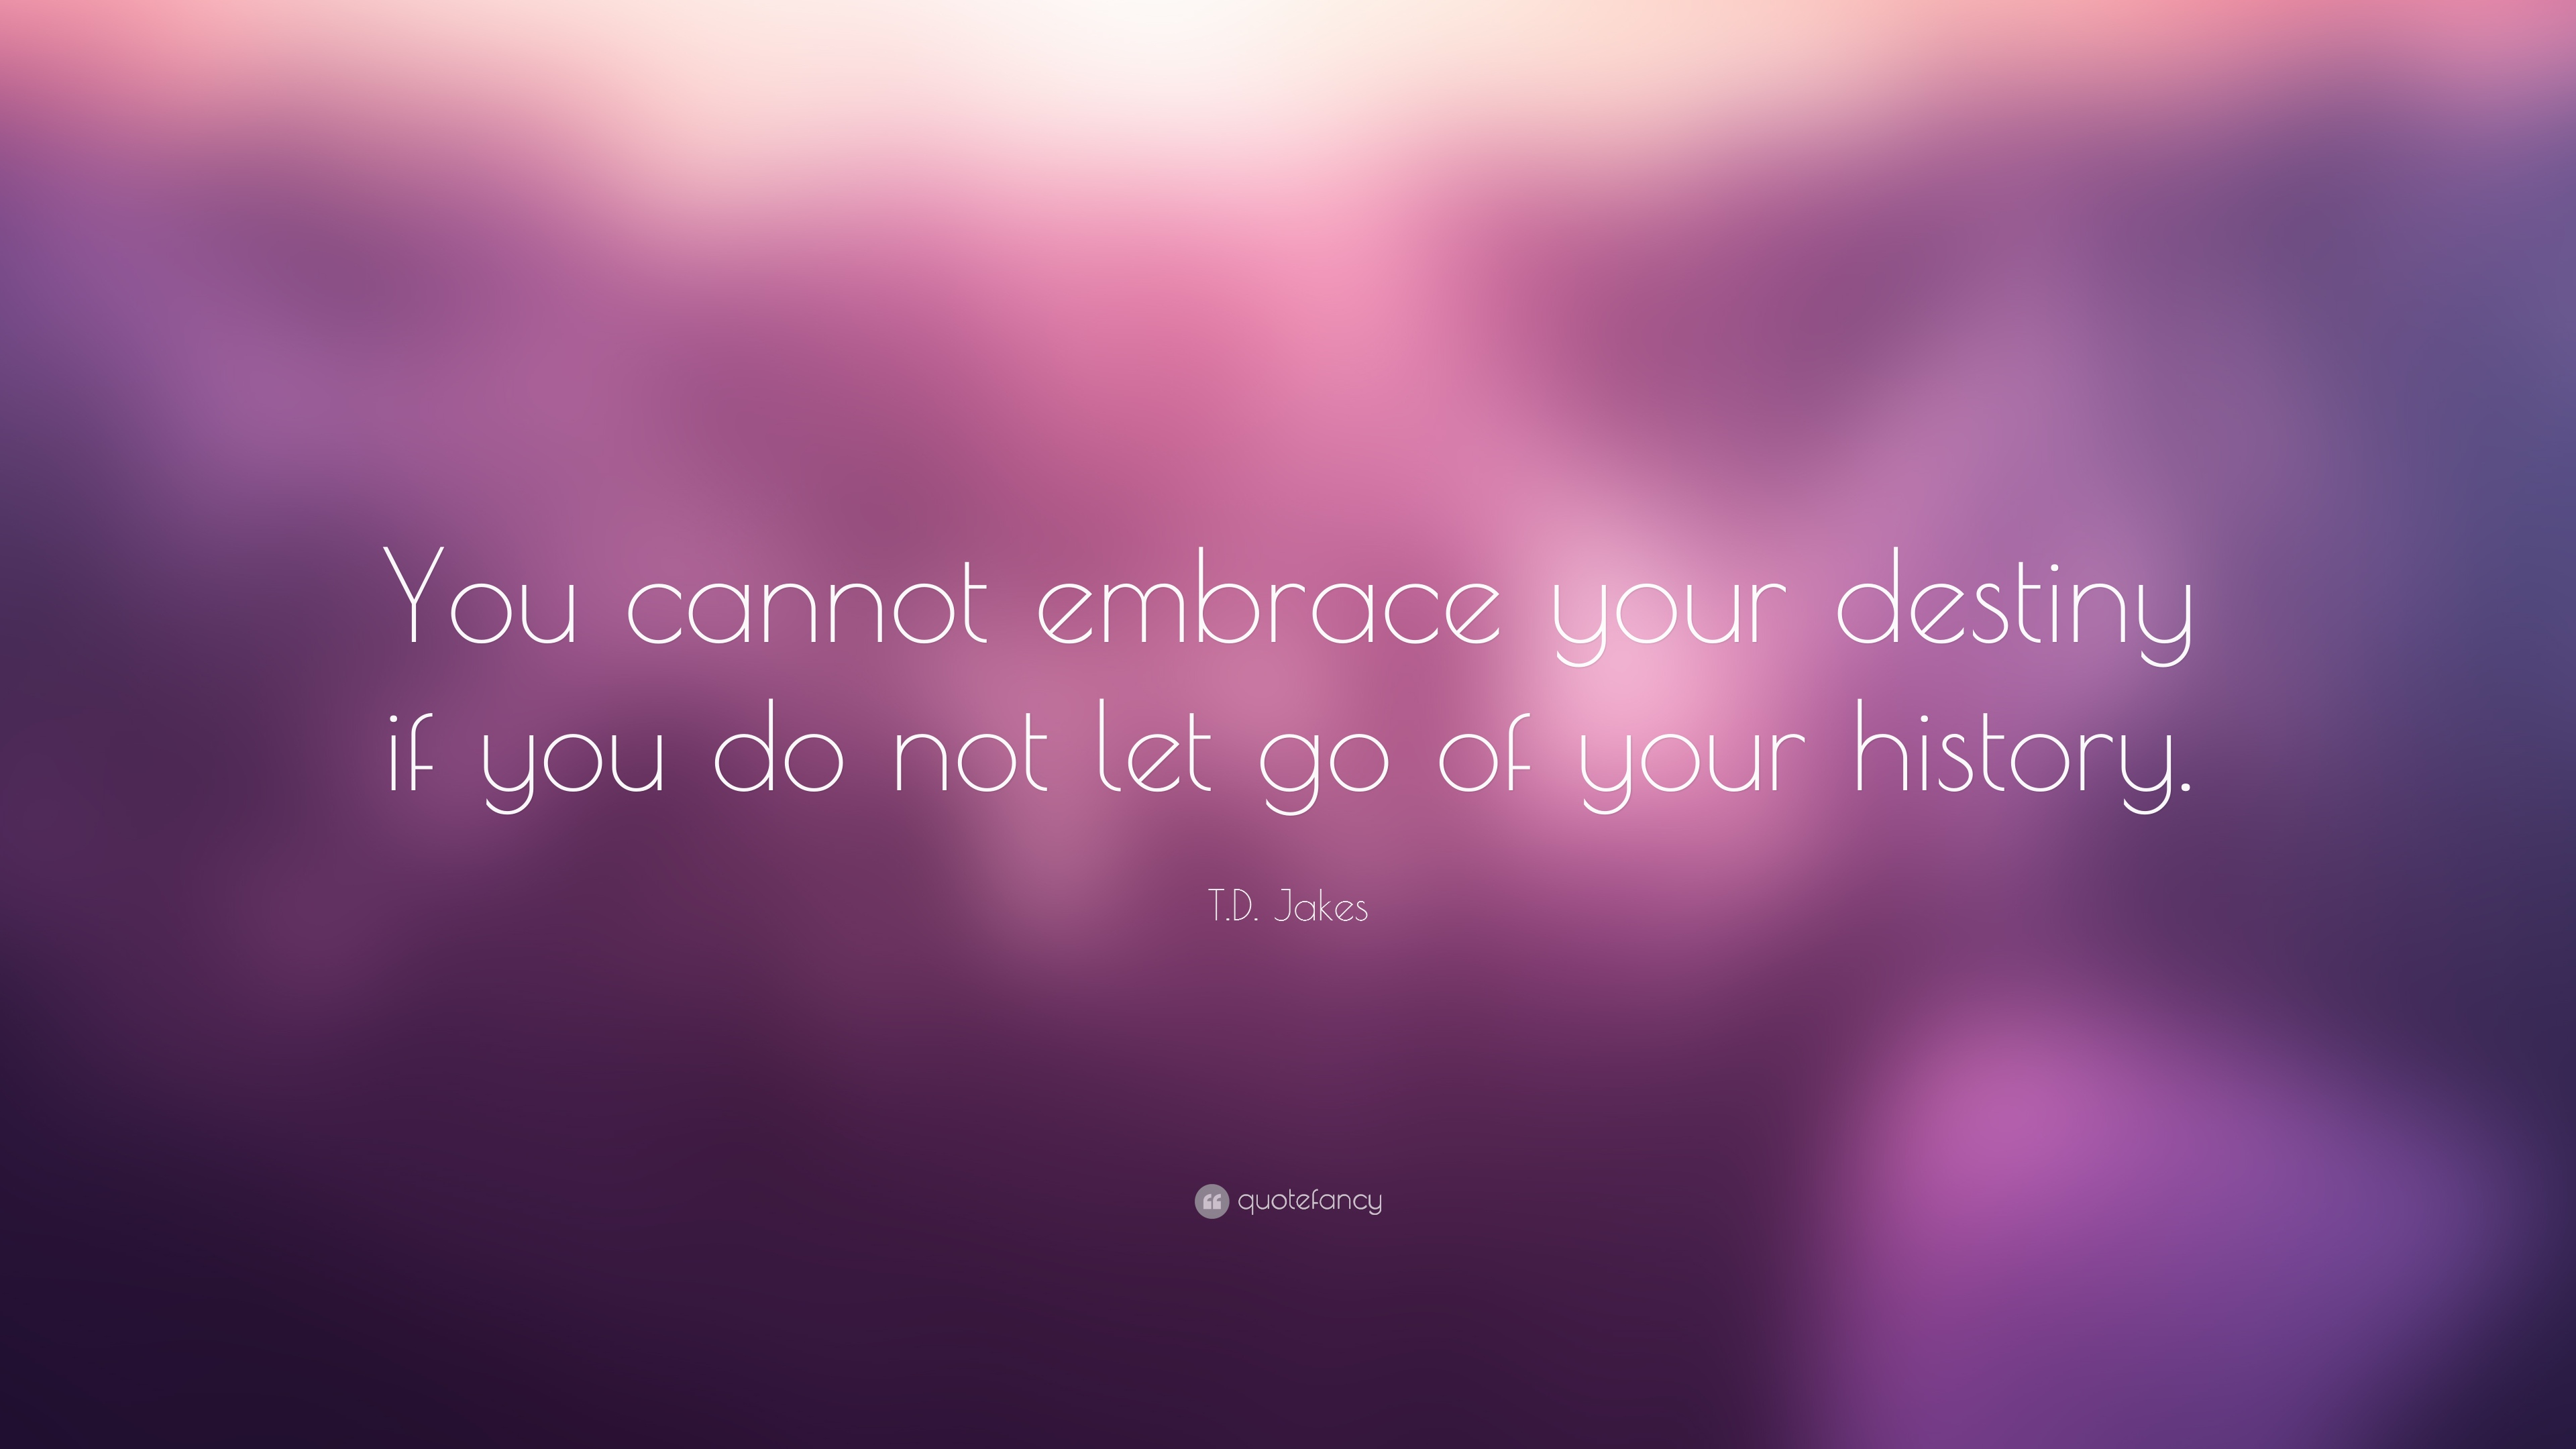 Td Jakes Quote You Cannot Embrace Your Destiny If You Do Not Let